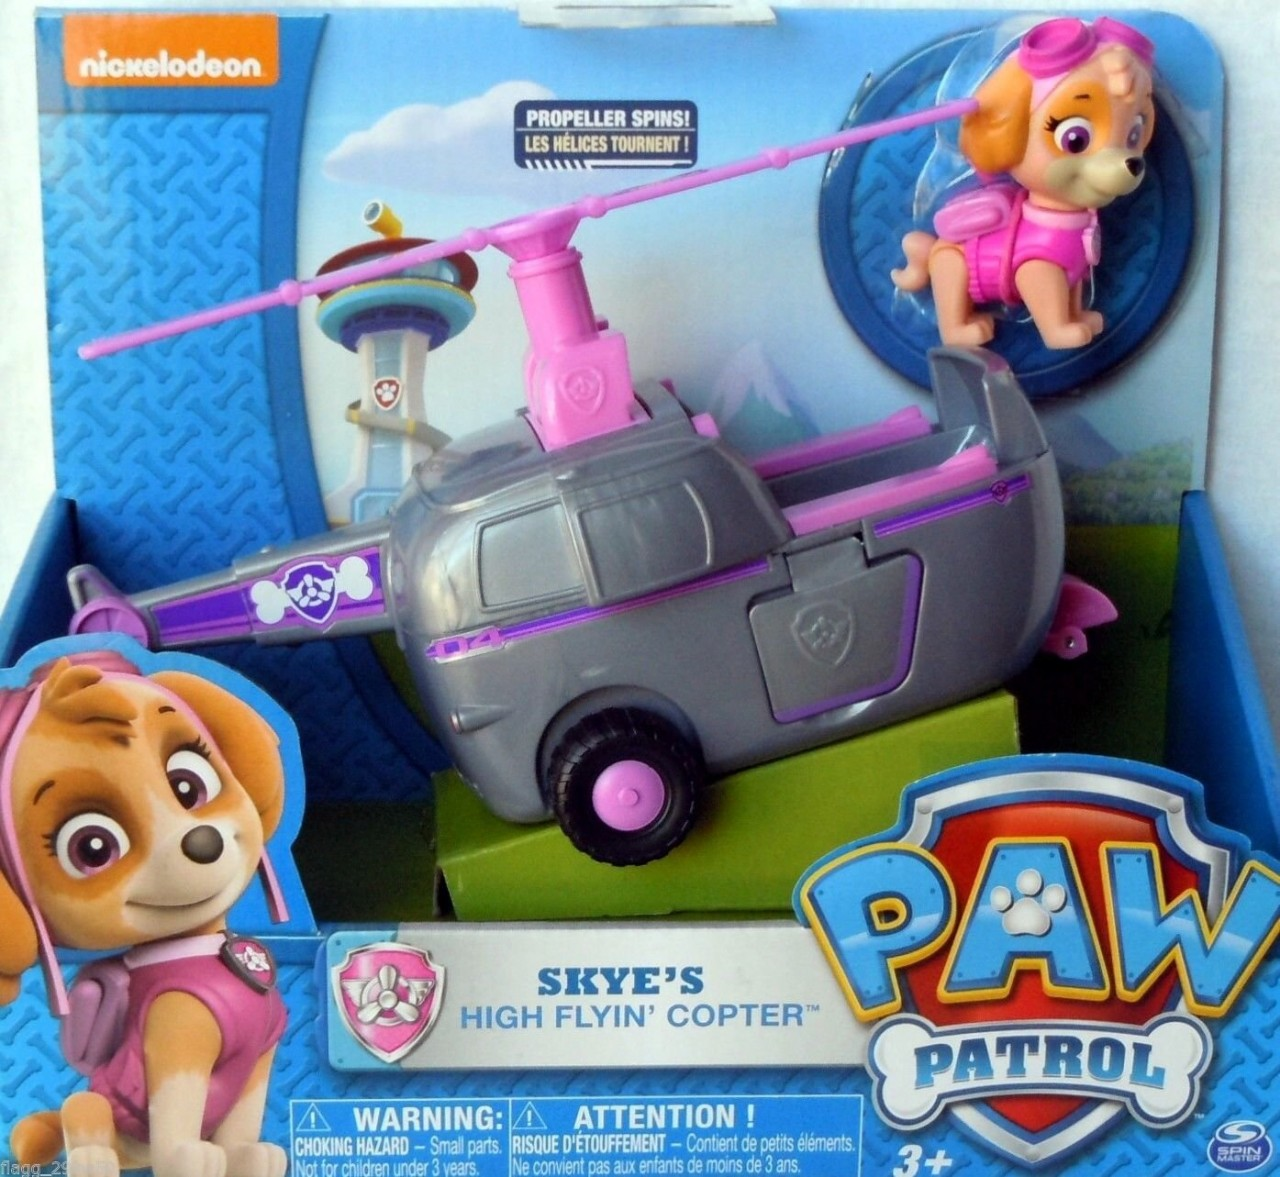 Nickelodeon Paw Patrol Skye S High Flyin Copter By Paw